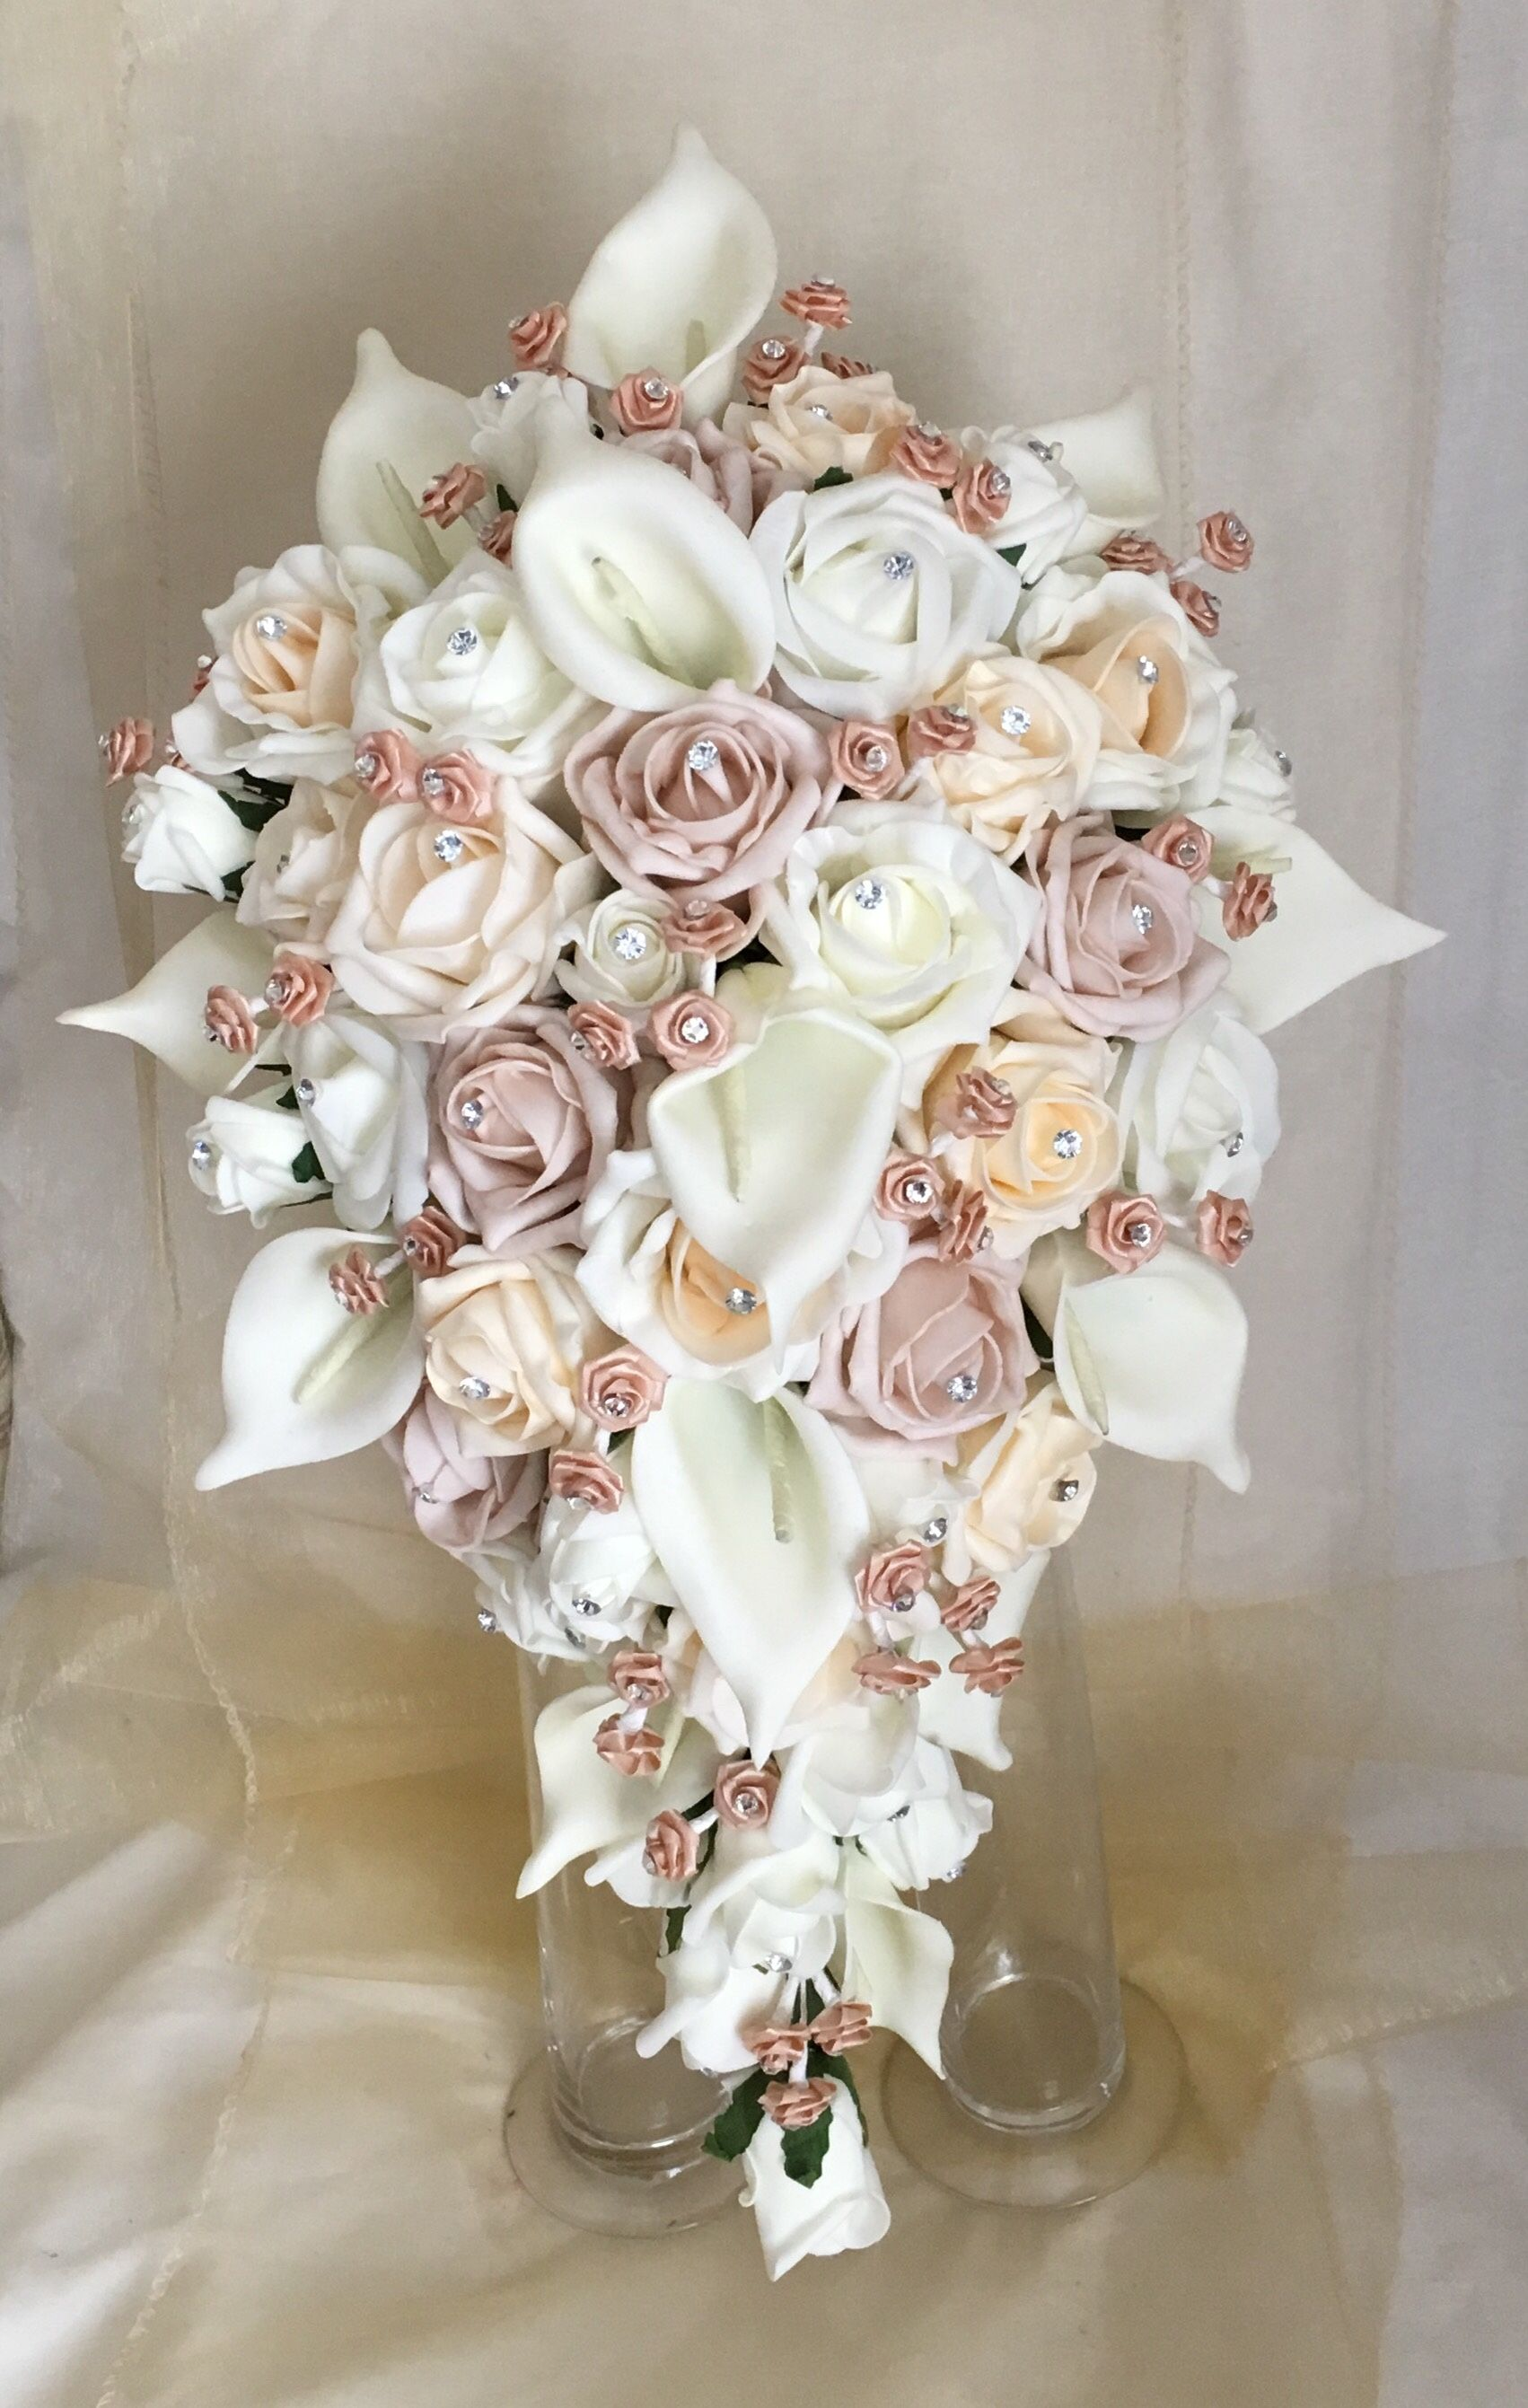 Artificial flowers tear drop wedding bouquet made with